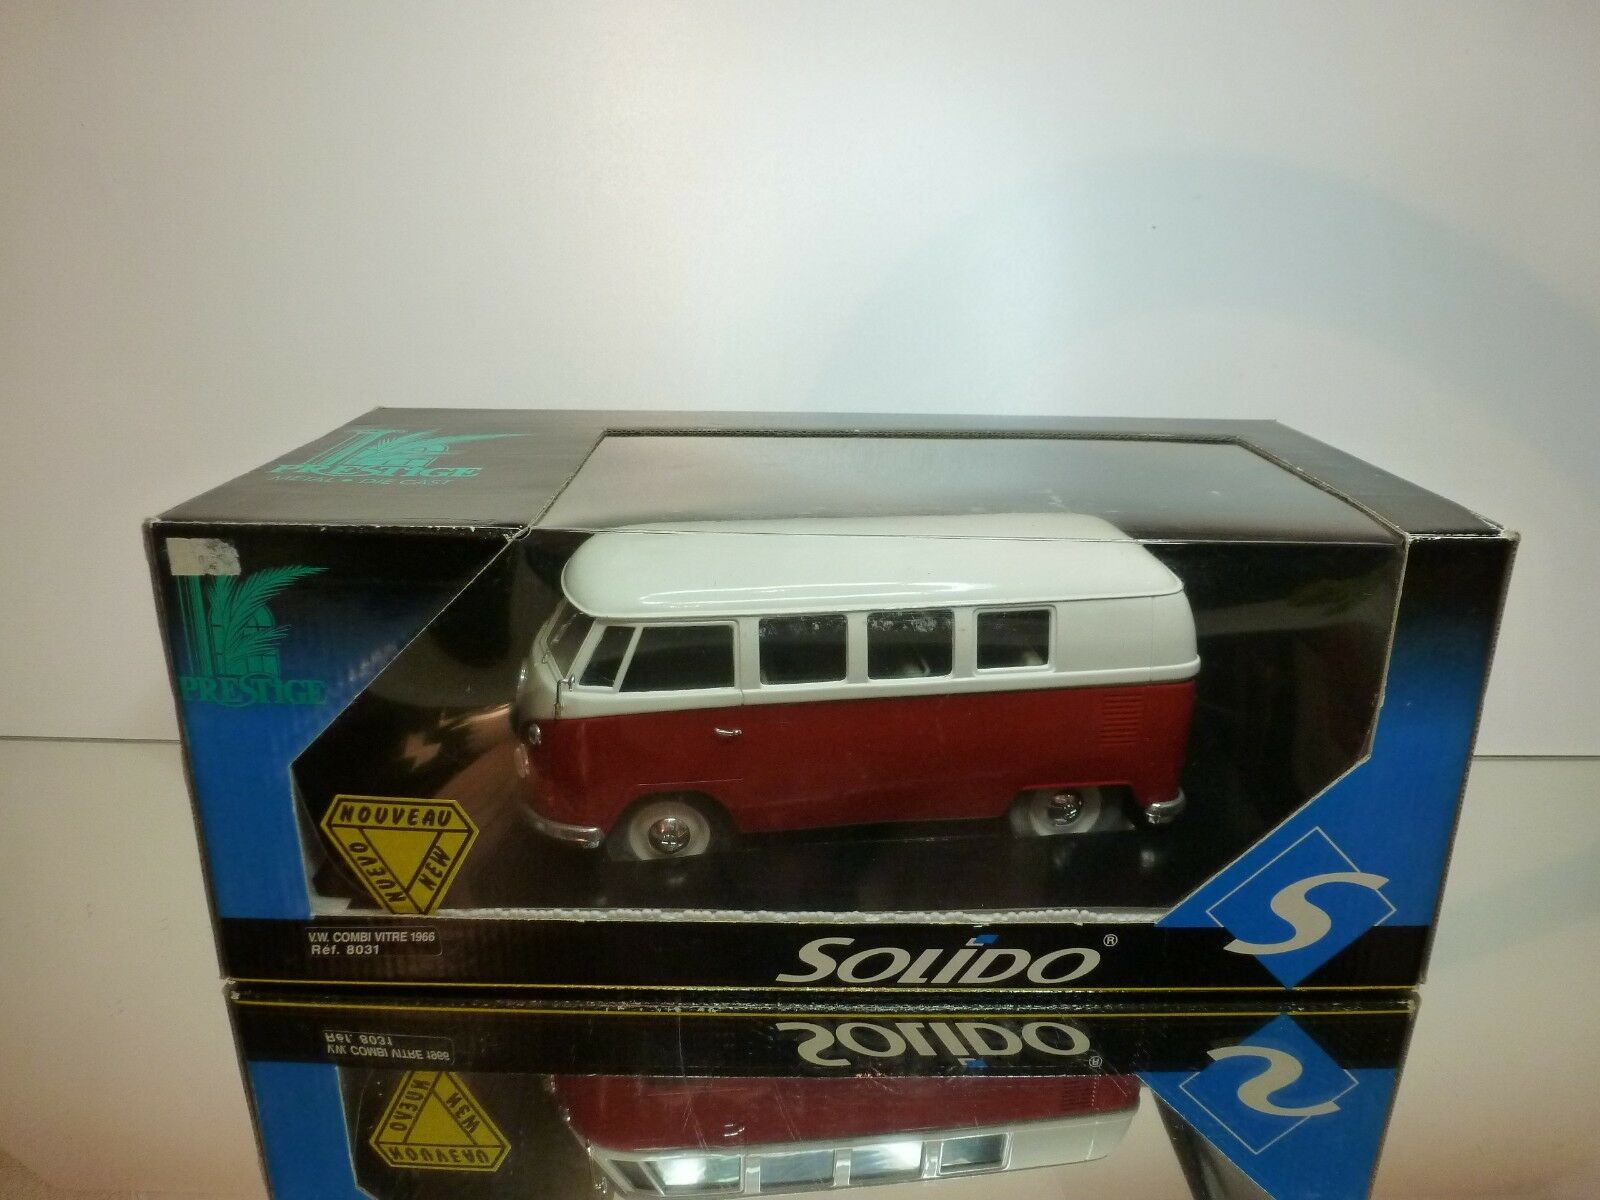 SOLIDO VW VOLKSWAGEN T1 COMBI VITRE 1966 - rouge + OFF-blanc L21.0cm - VERY GOOD